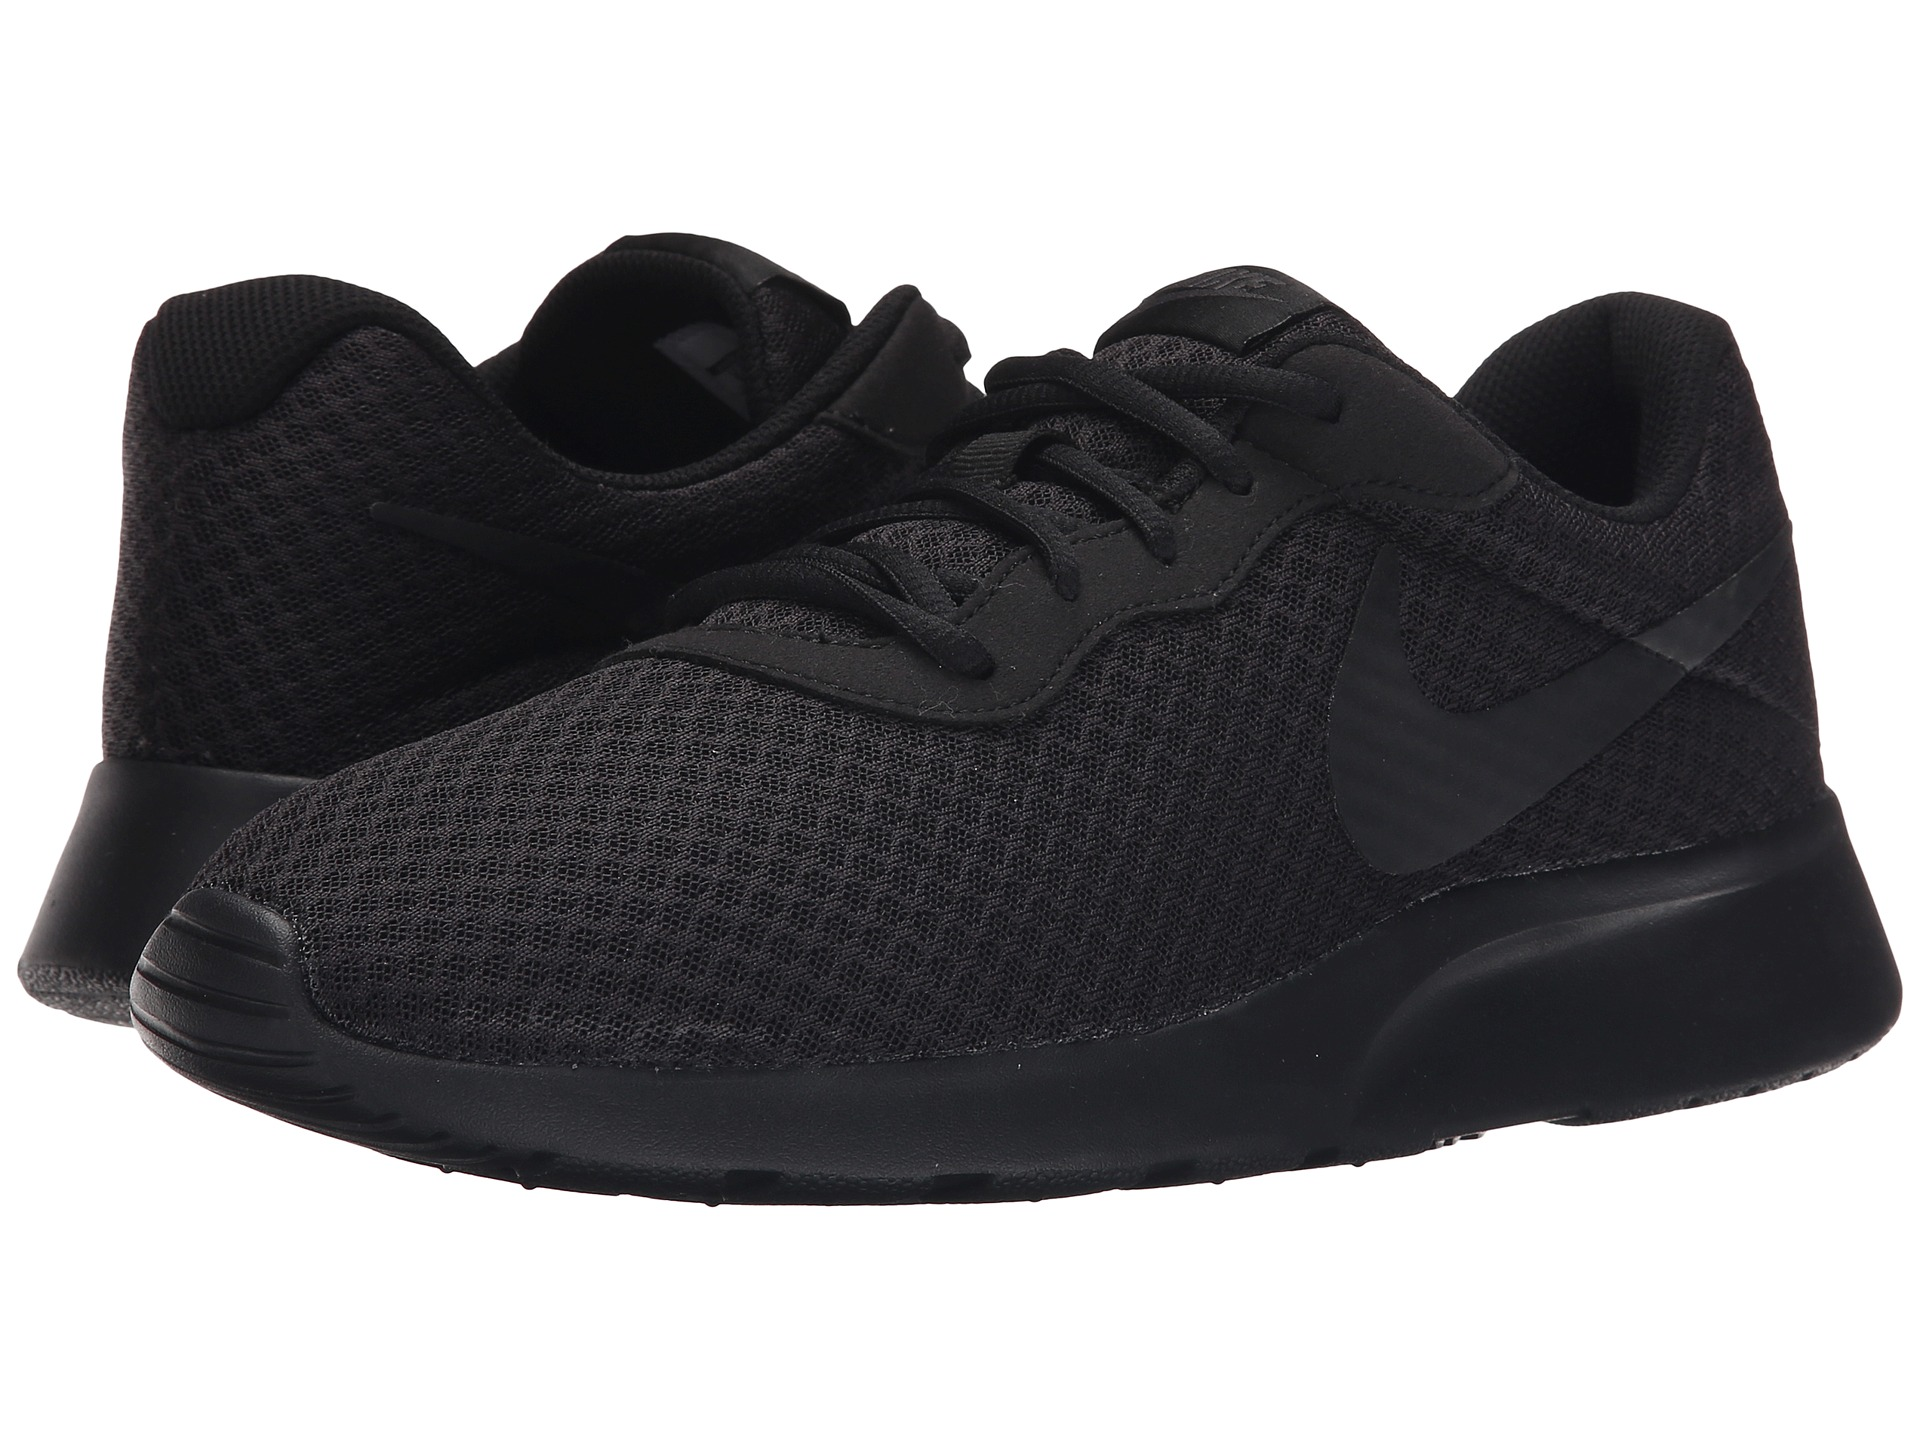 02be0a855a8d All Black Nike Running Shoes   Buy Nike Sneakers   Shoes